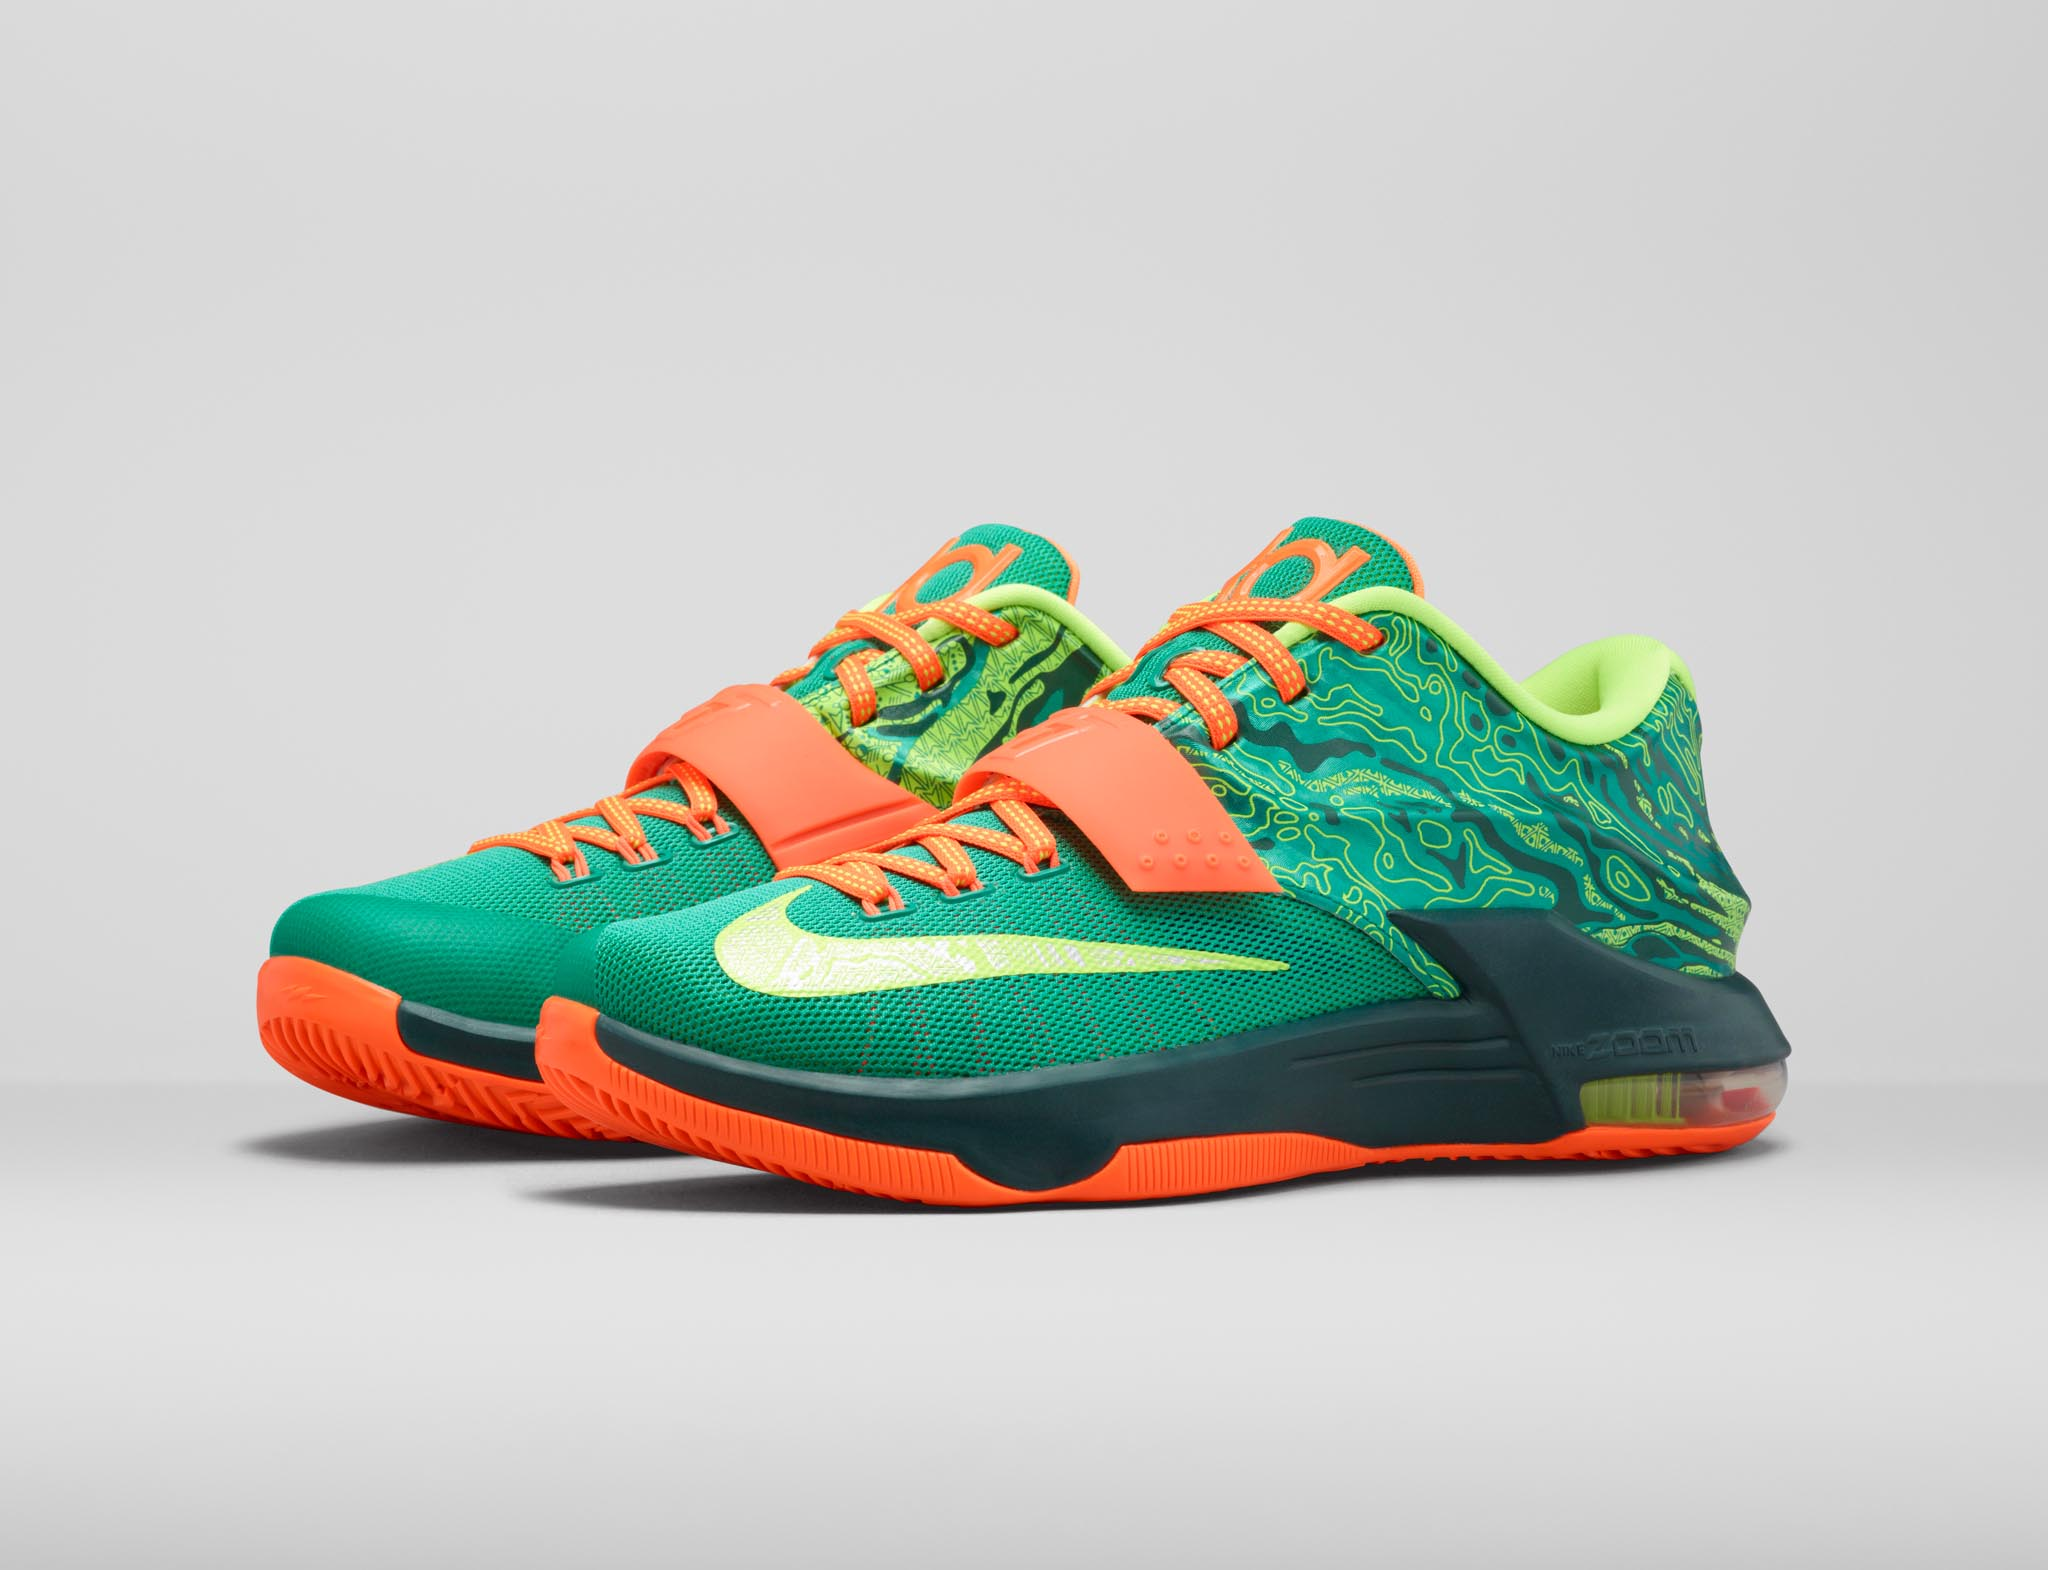 98bd92be4fcb ... czech the nike kd7 weatherman is one of those shoes i that made me want  to